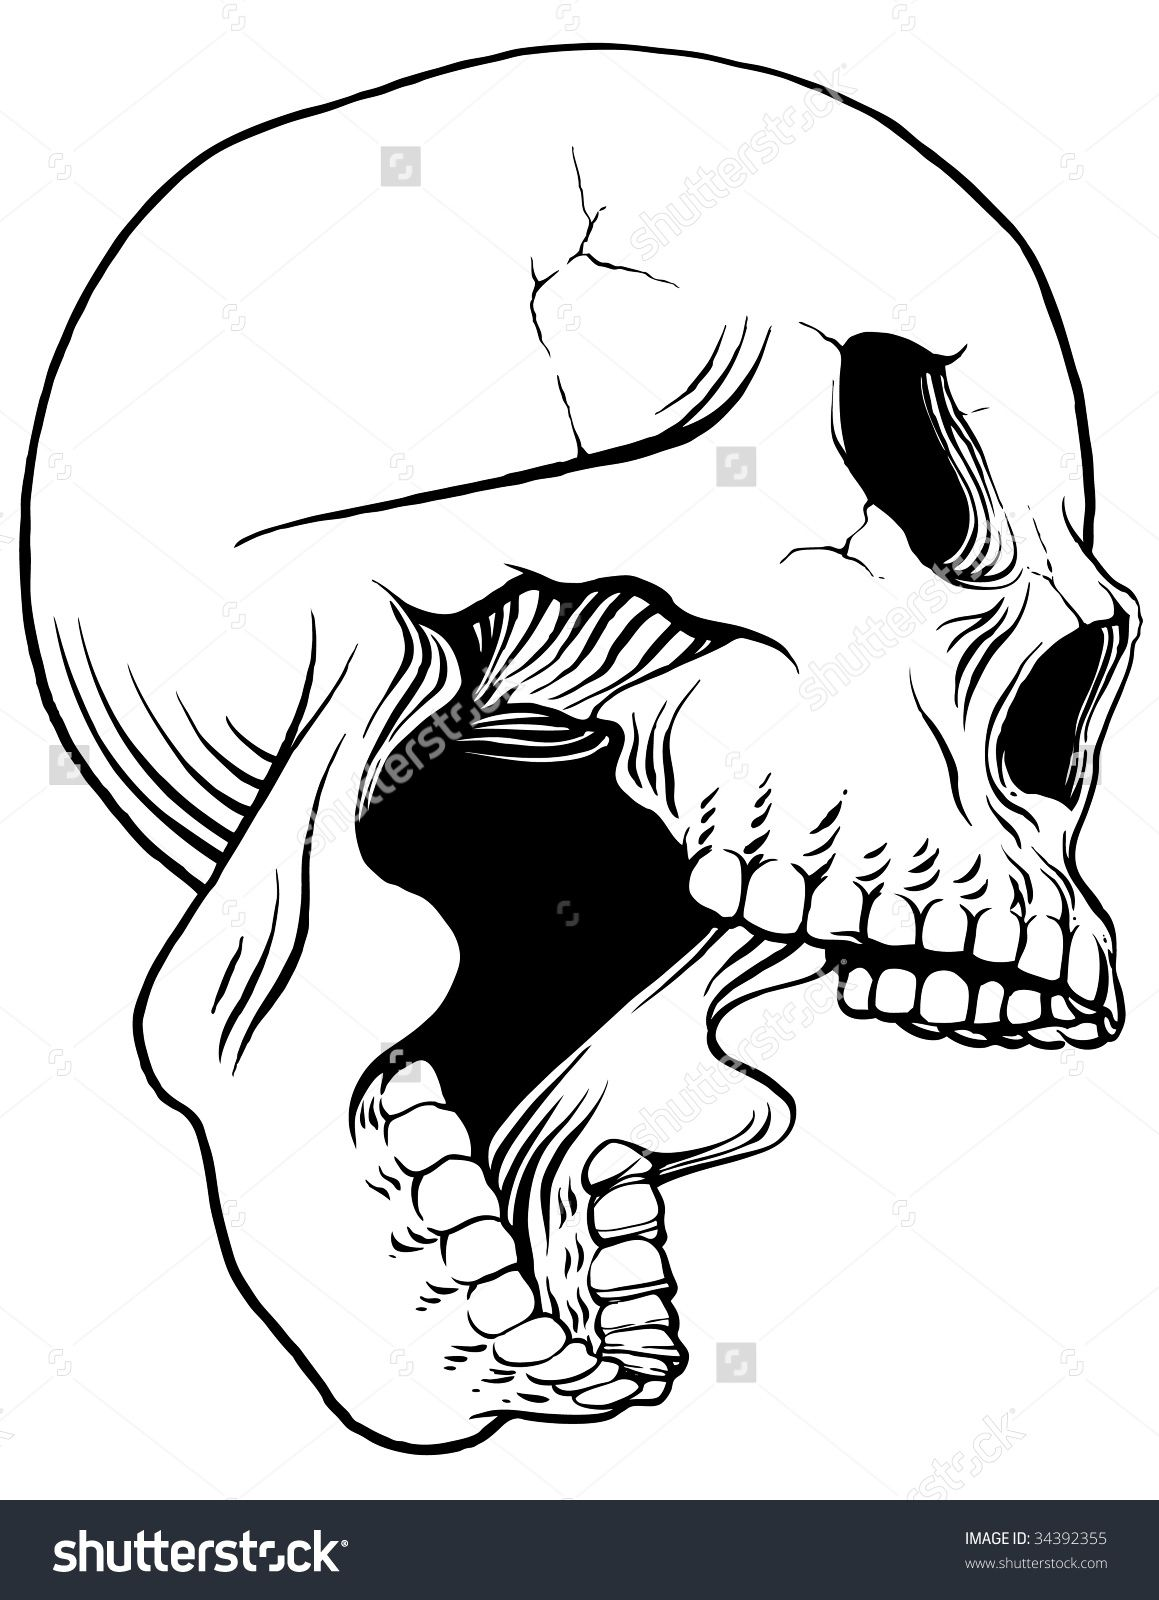 It's just a photo of Luscious Skull Profile Drawing